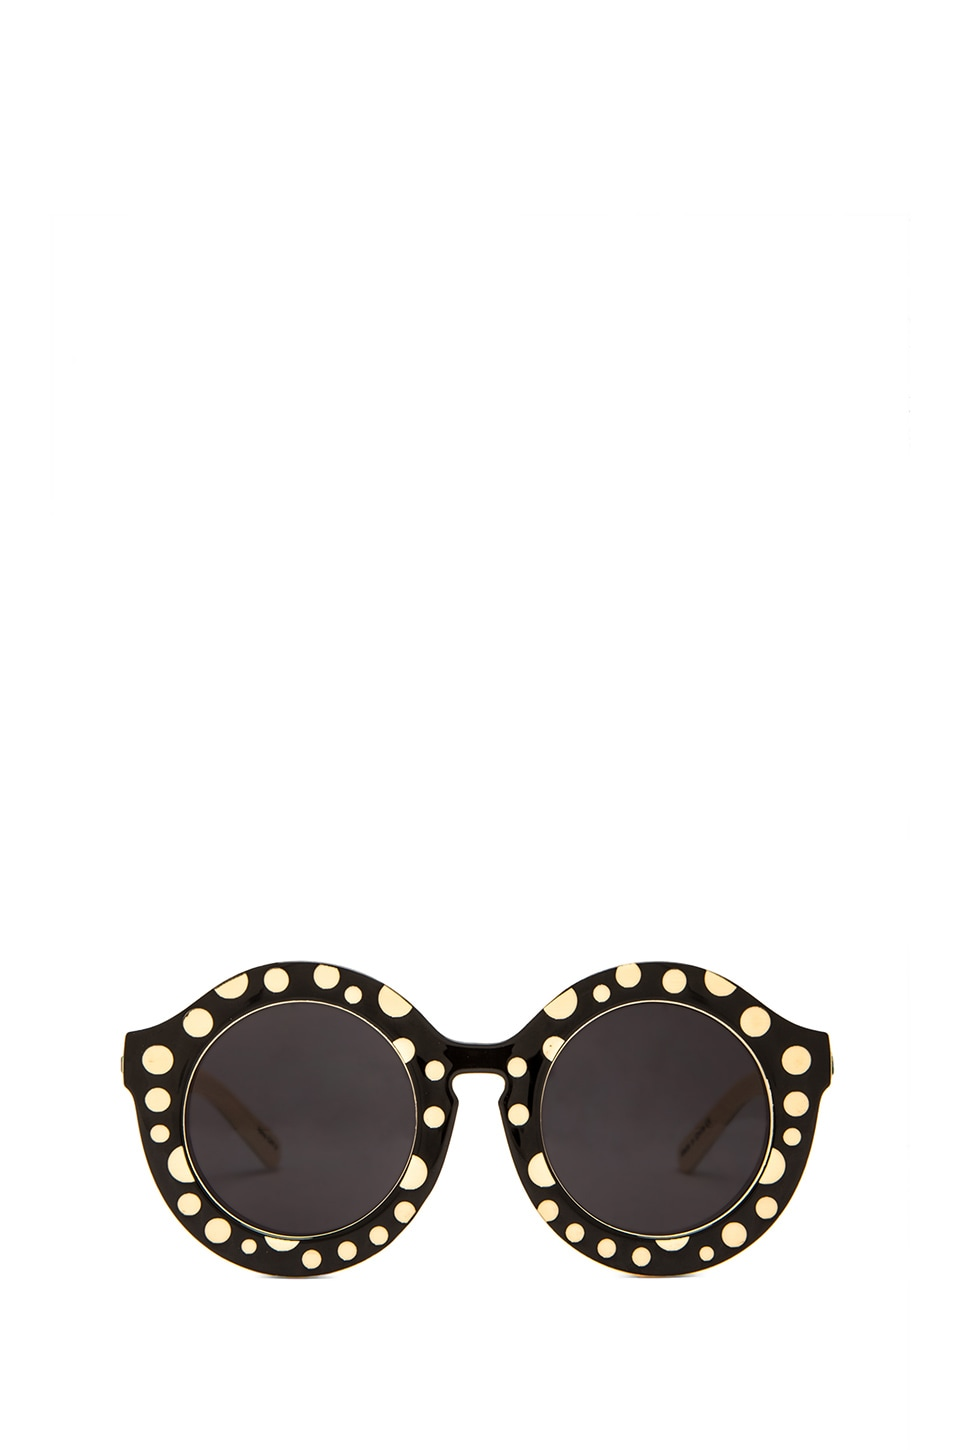 Quay Penelopy Sunglasses in Black Polkadot